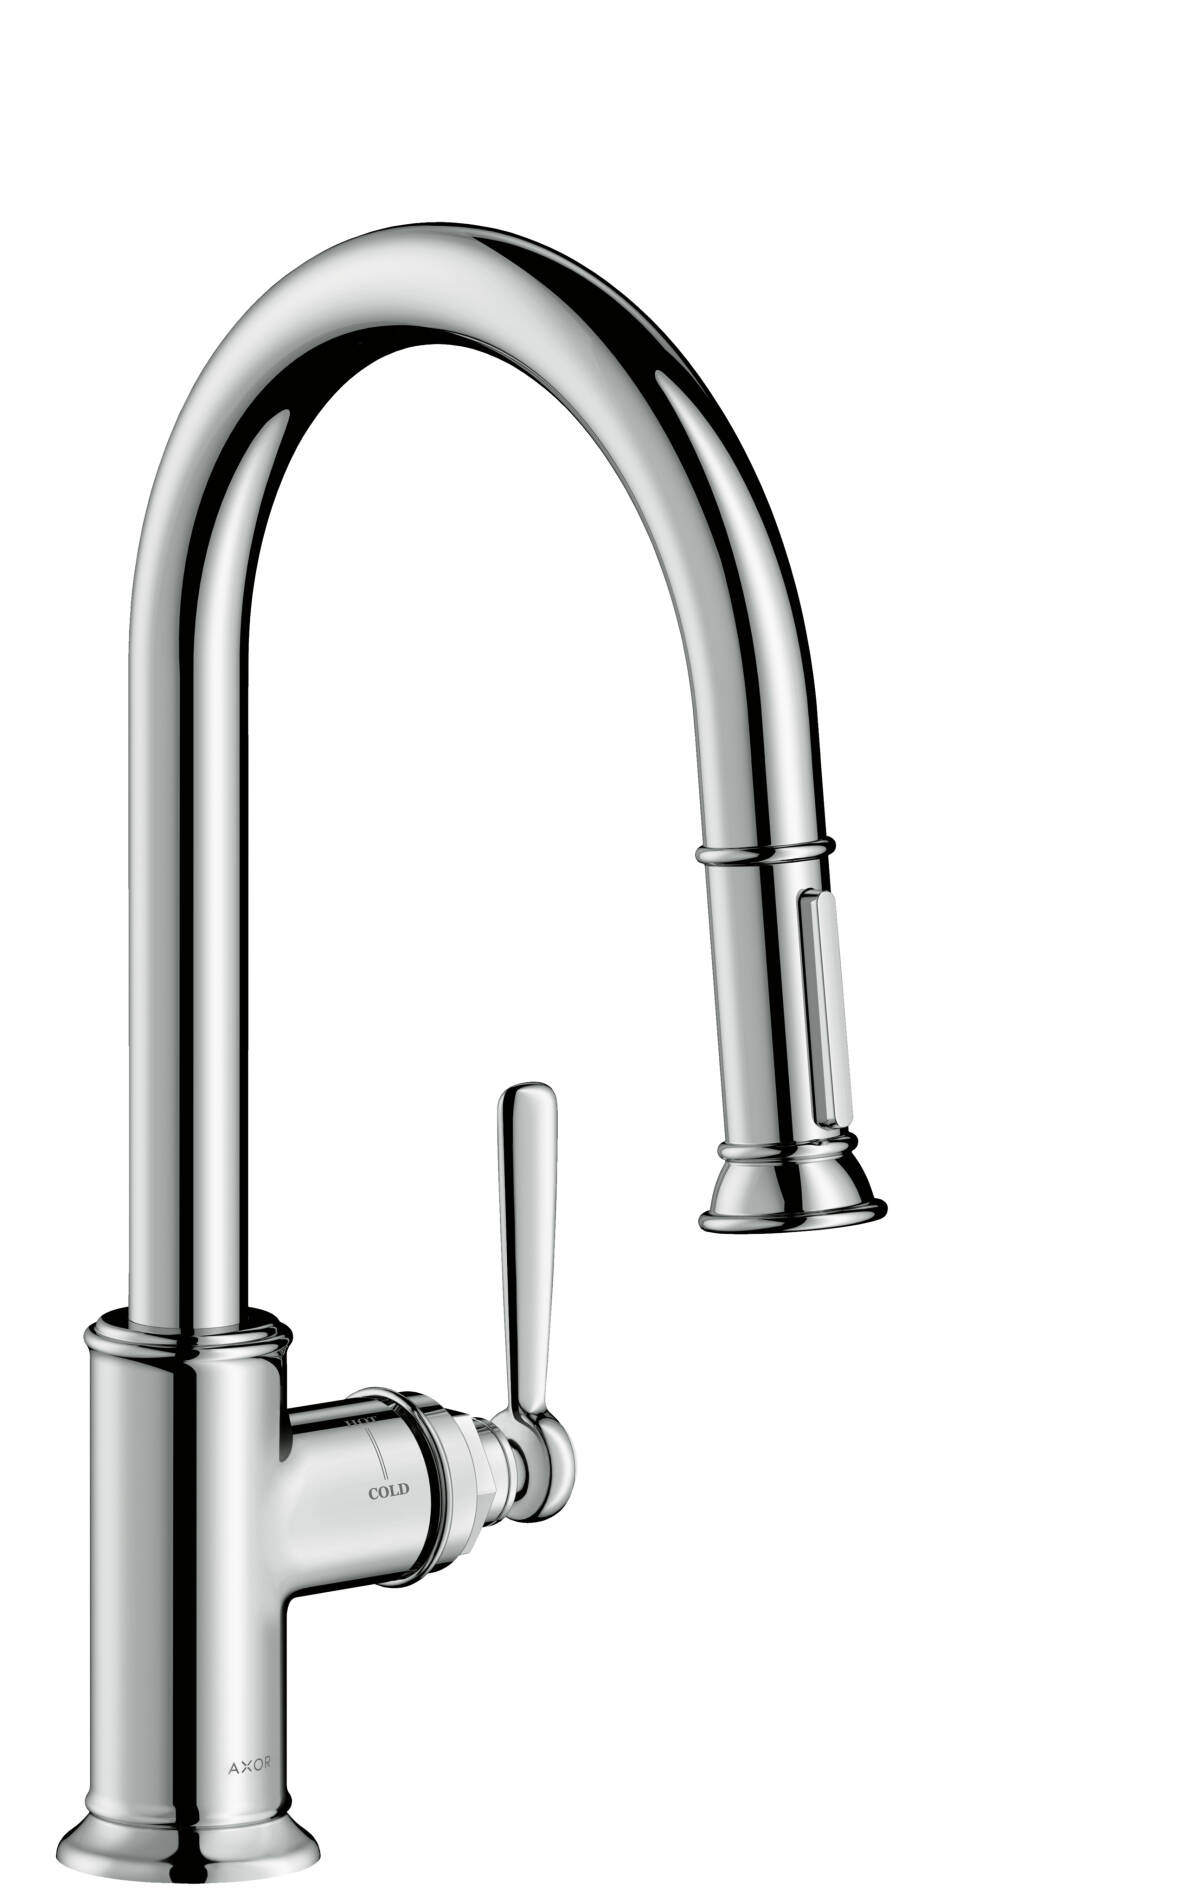 Single lever kitchen mixer 180 with pull-out spray, Chrome, 16581000